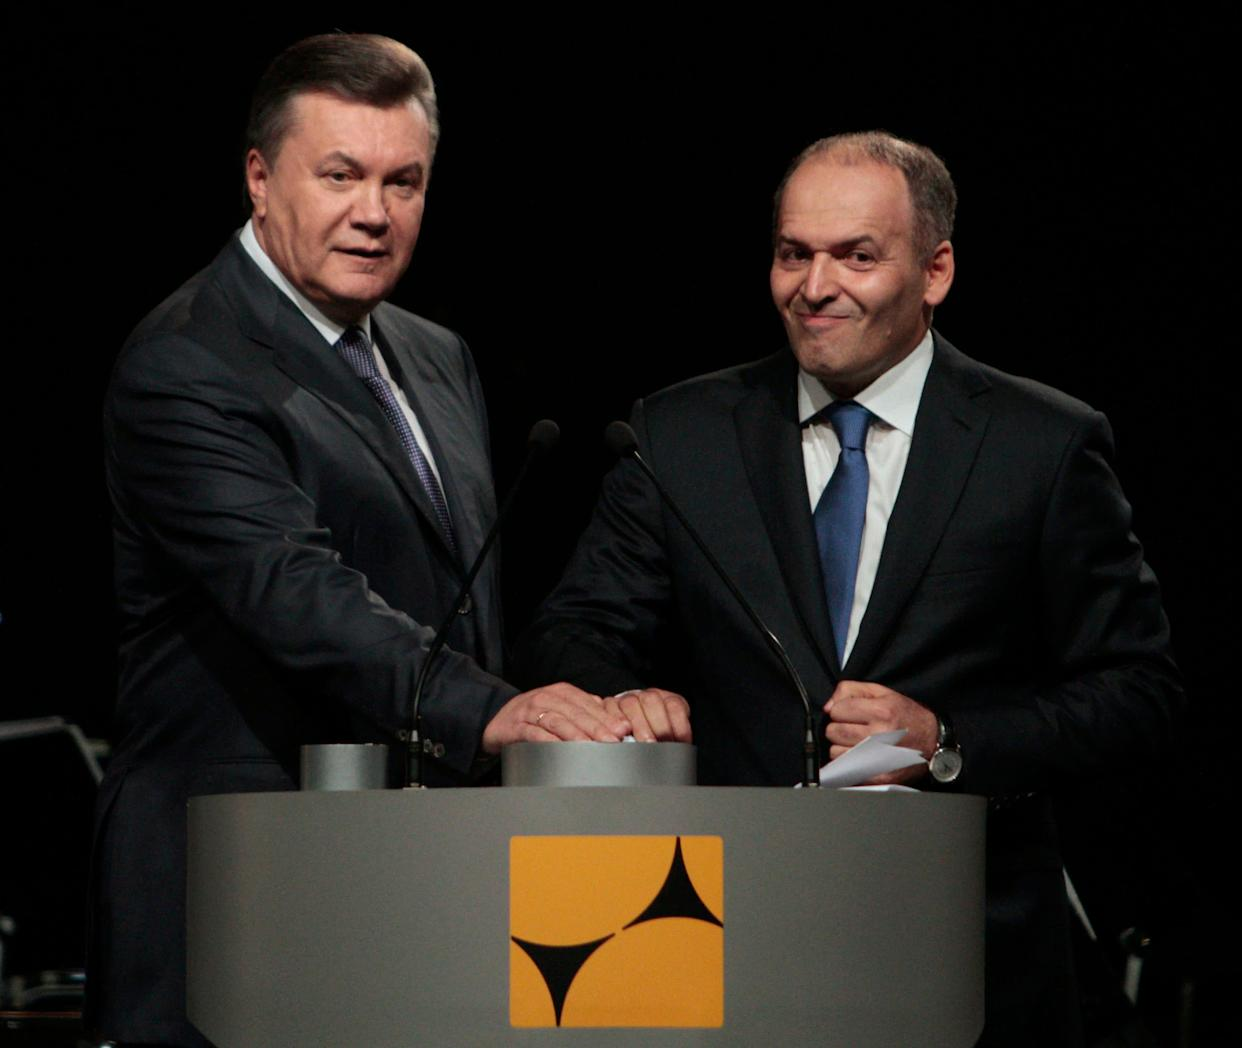 Ukraine's former president Viktor Yanukovych and tycoon Viktor Pinchuk take part in a ceremony to open a new steel mill on Oct. 4, 2012. (Photo: Anatolii Stepanov / Reuters)